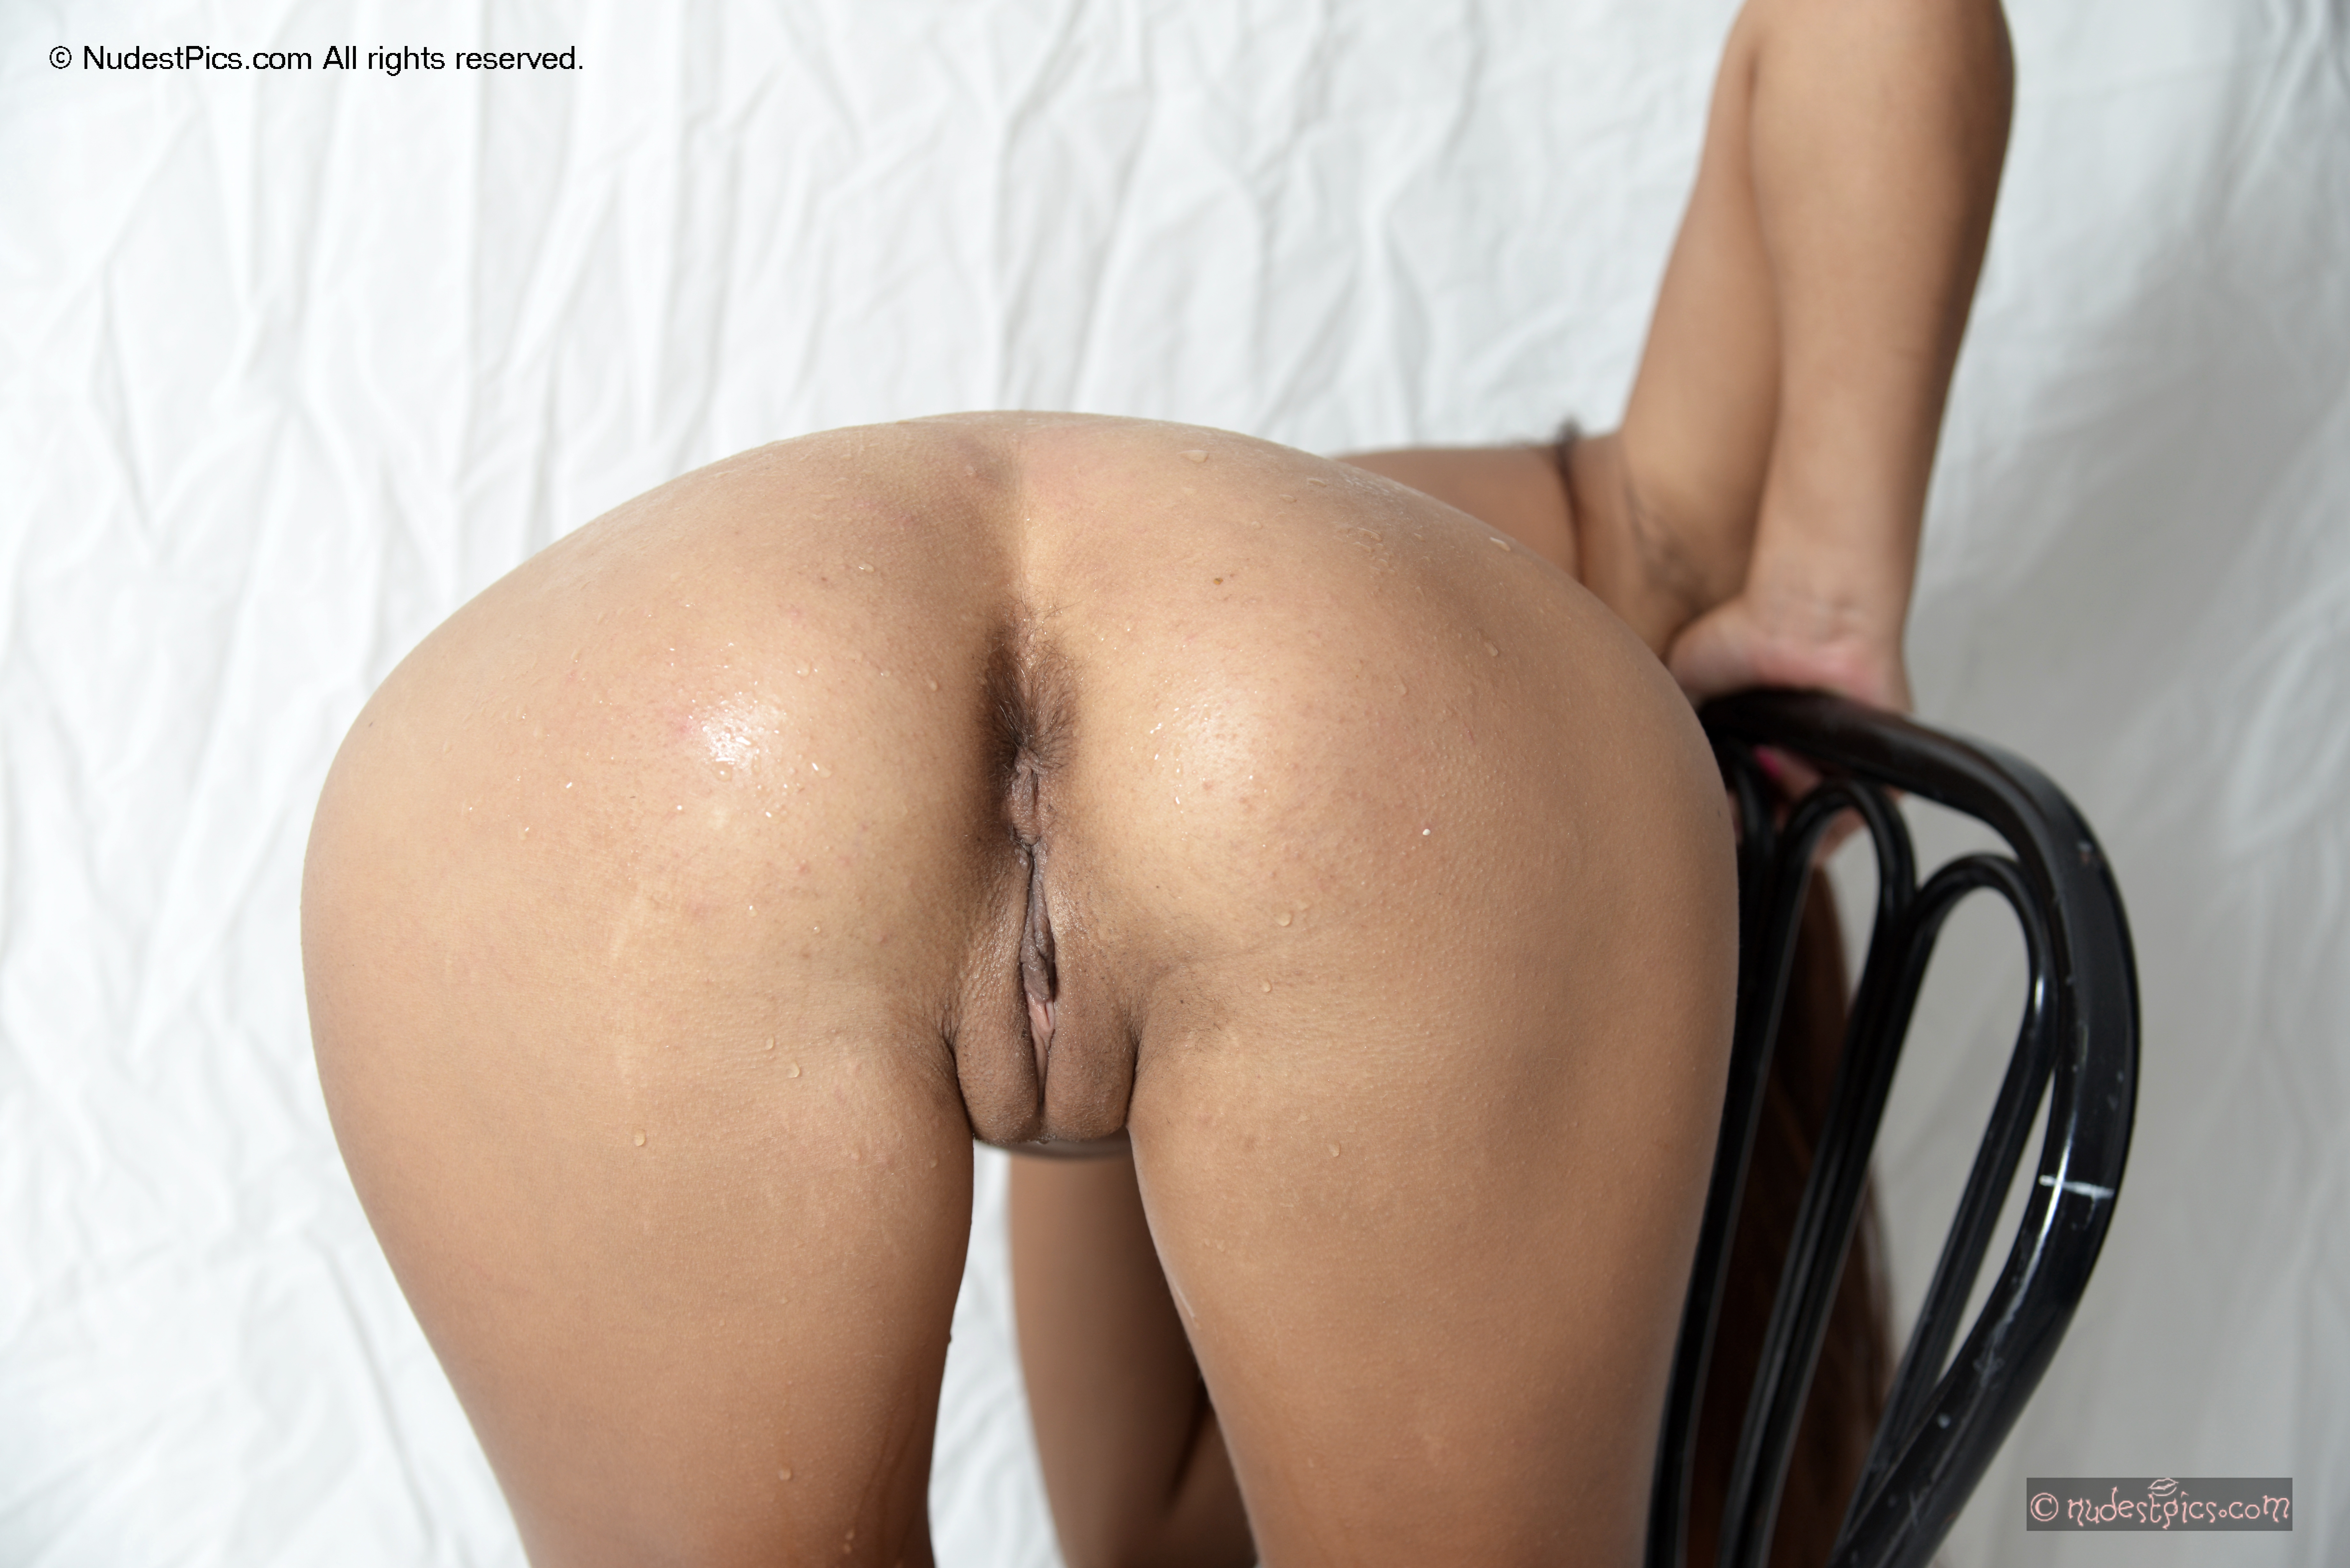 Bent Over Chair Naked